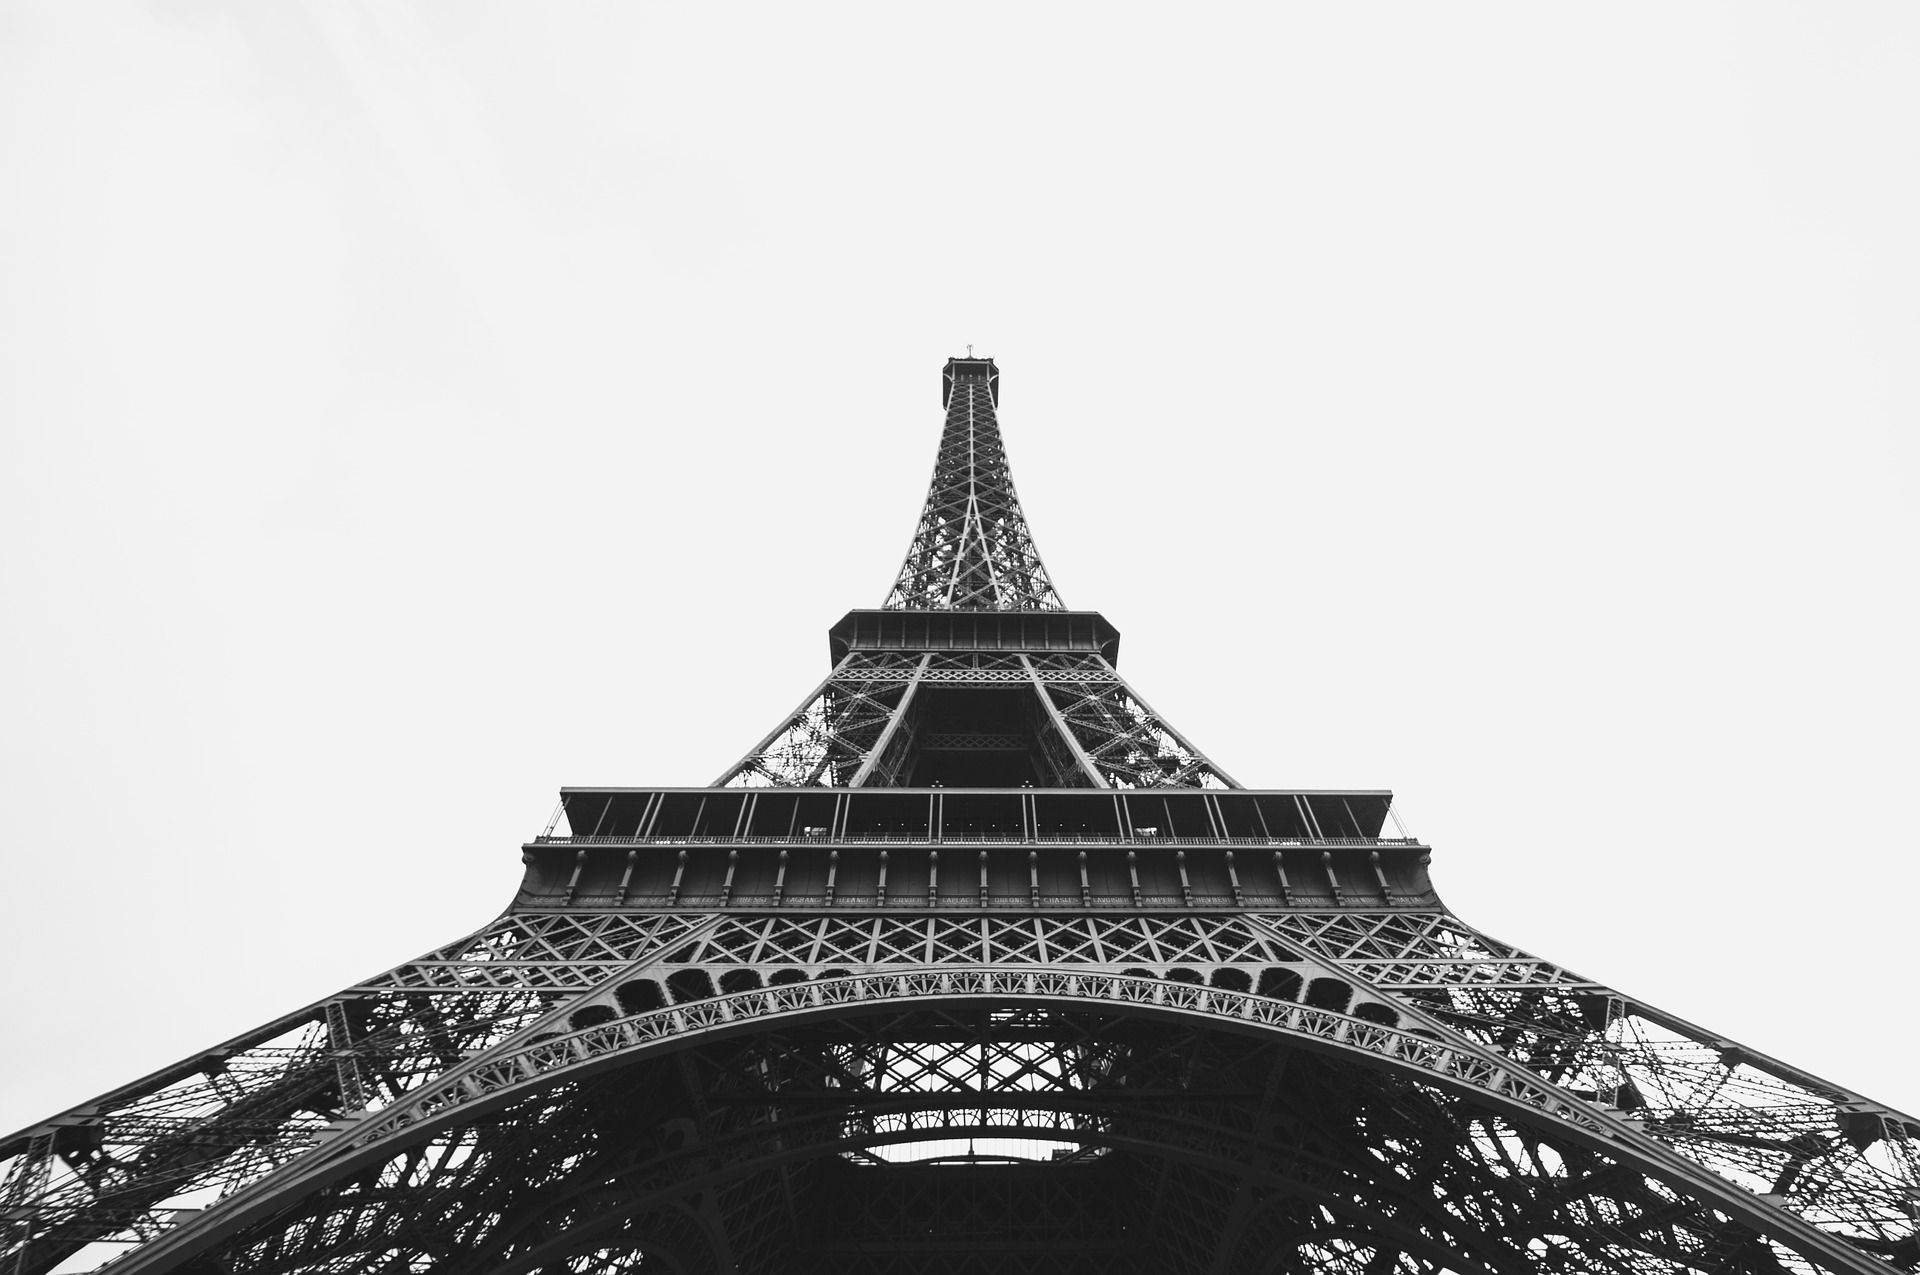 eiffel-tower-1149926_1920.jpg